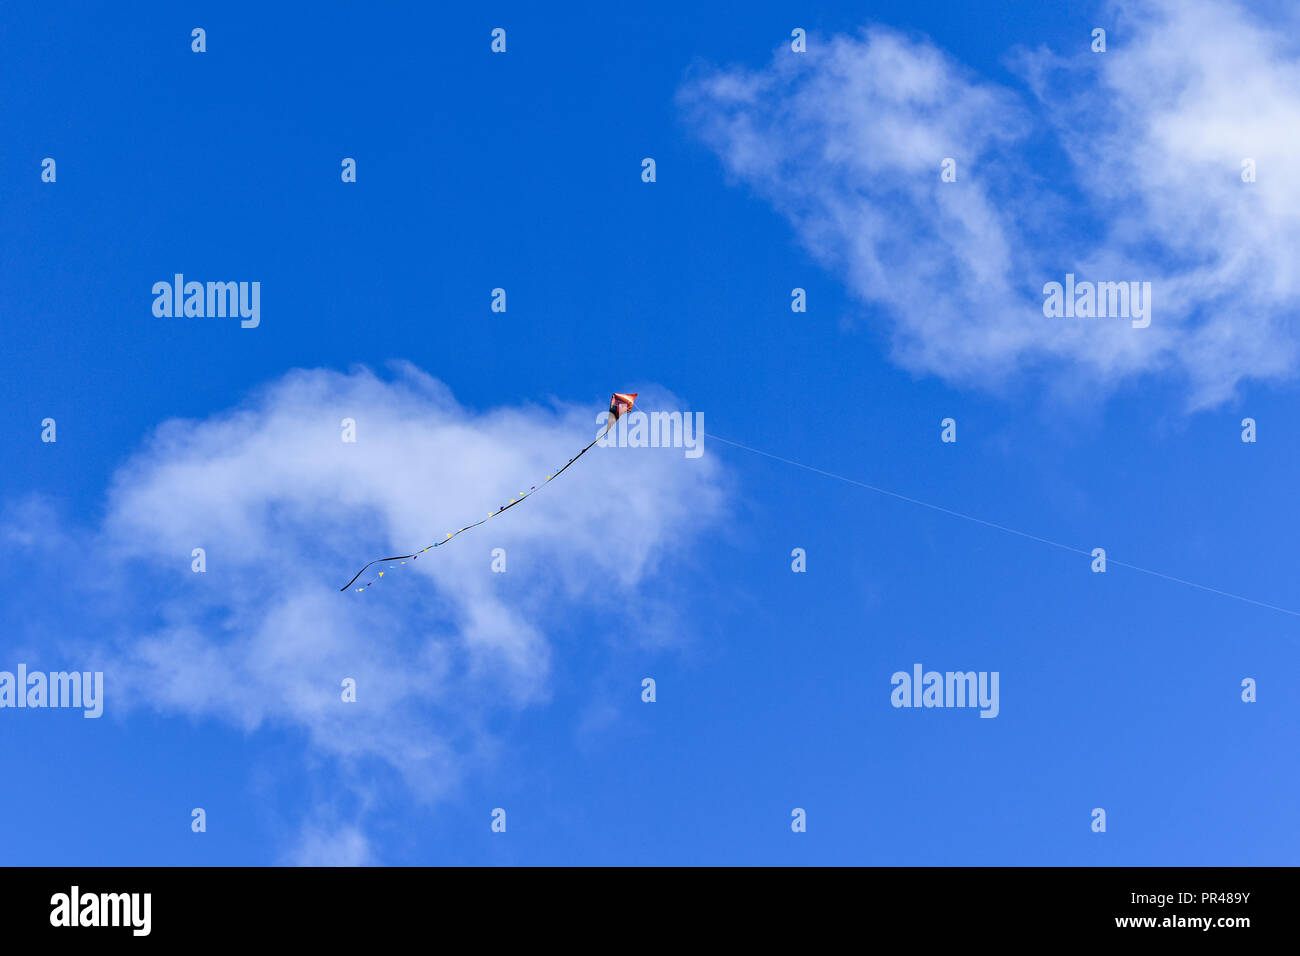 A red kite flying against a blue sky. Child's play. - Stock Image